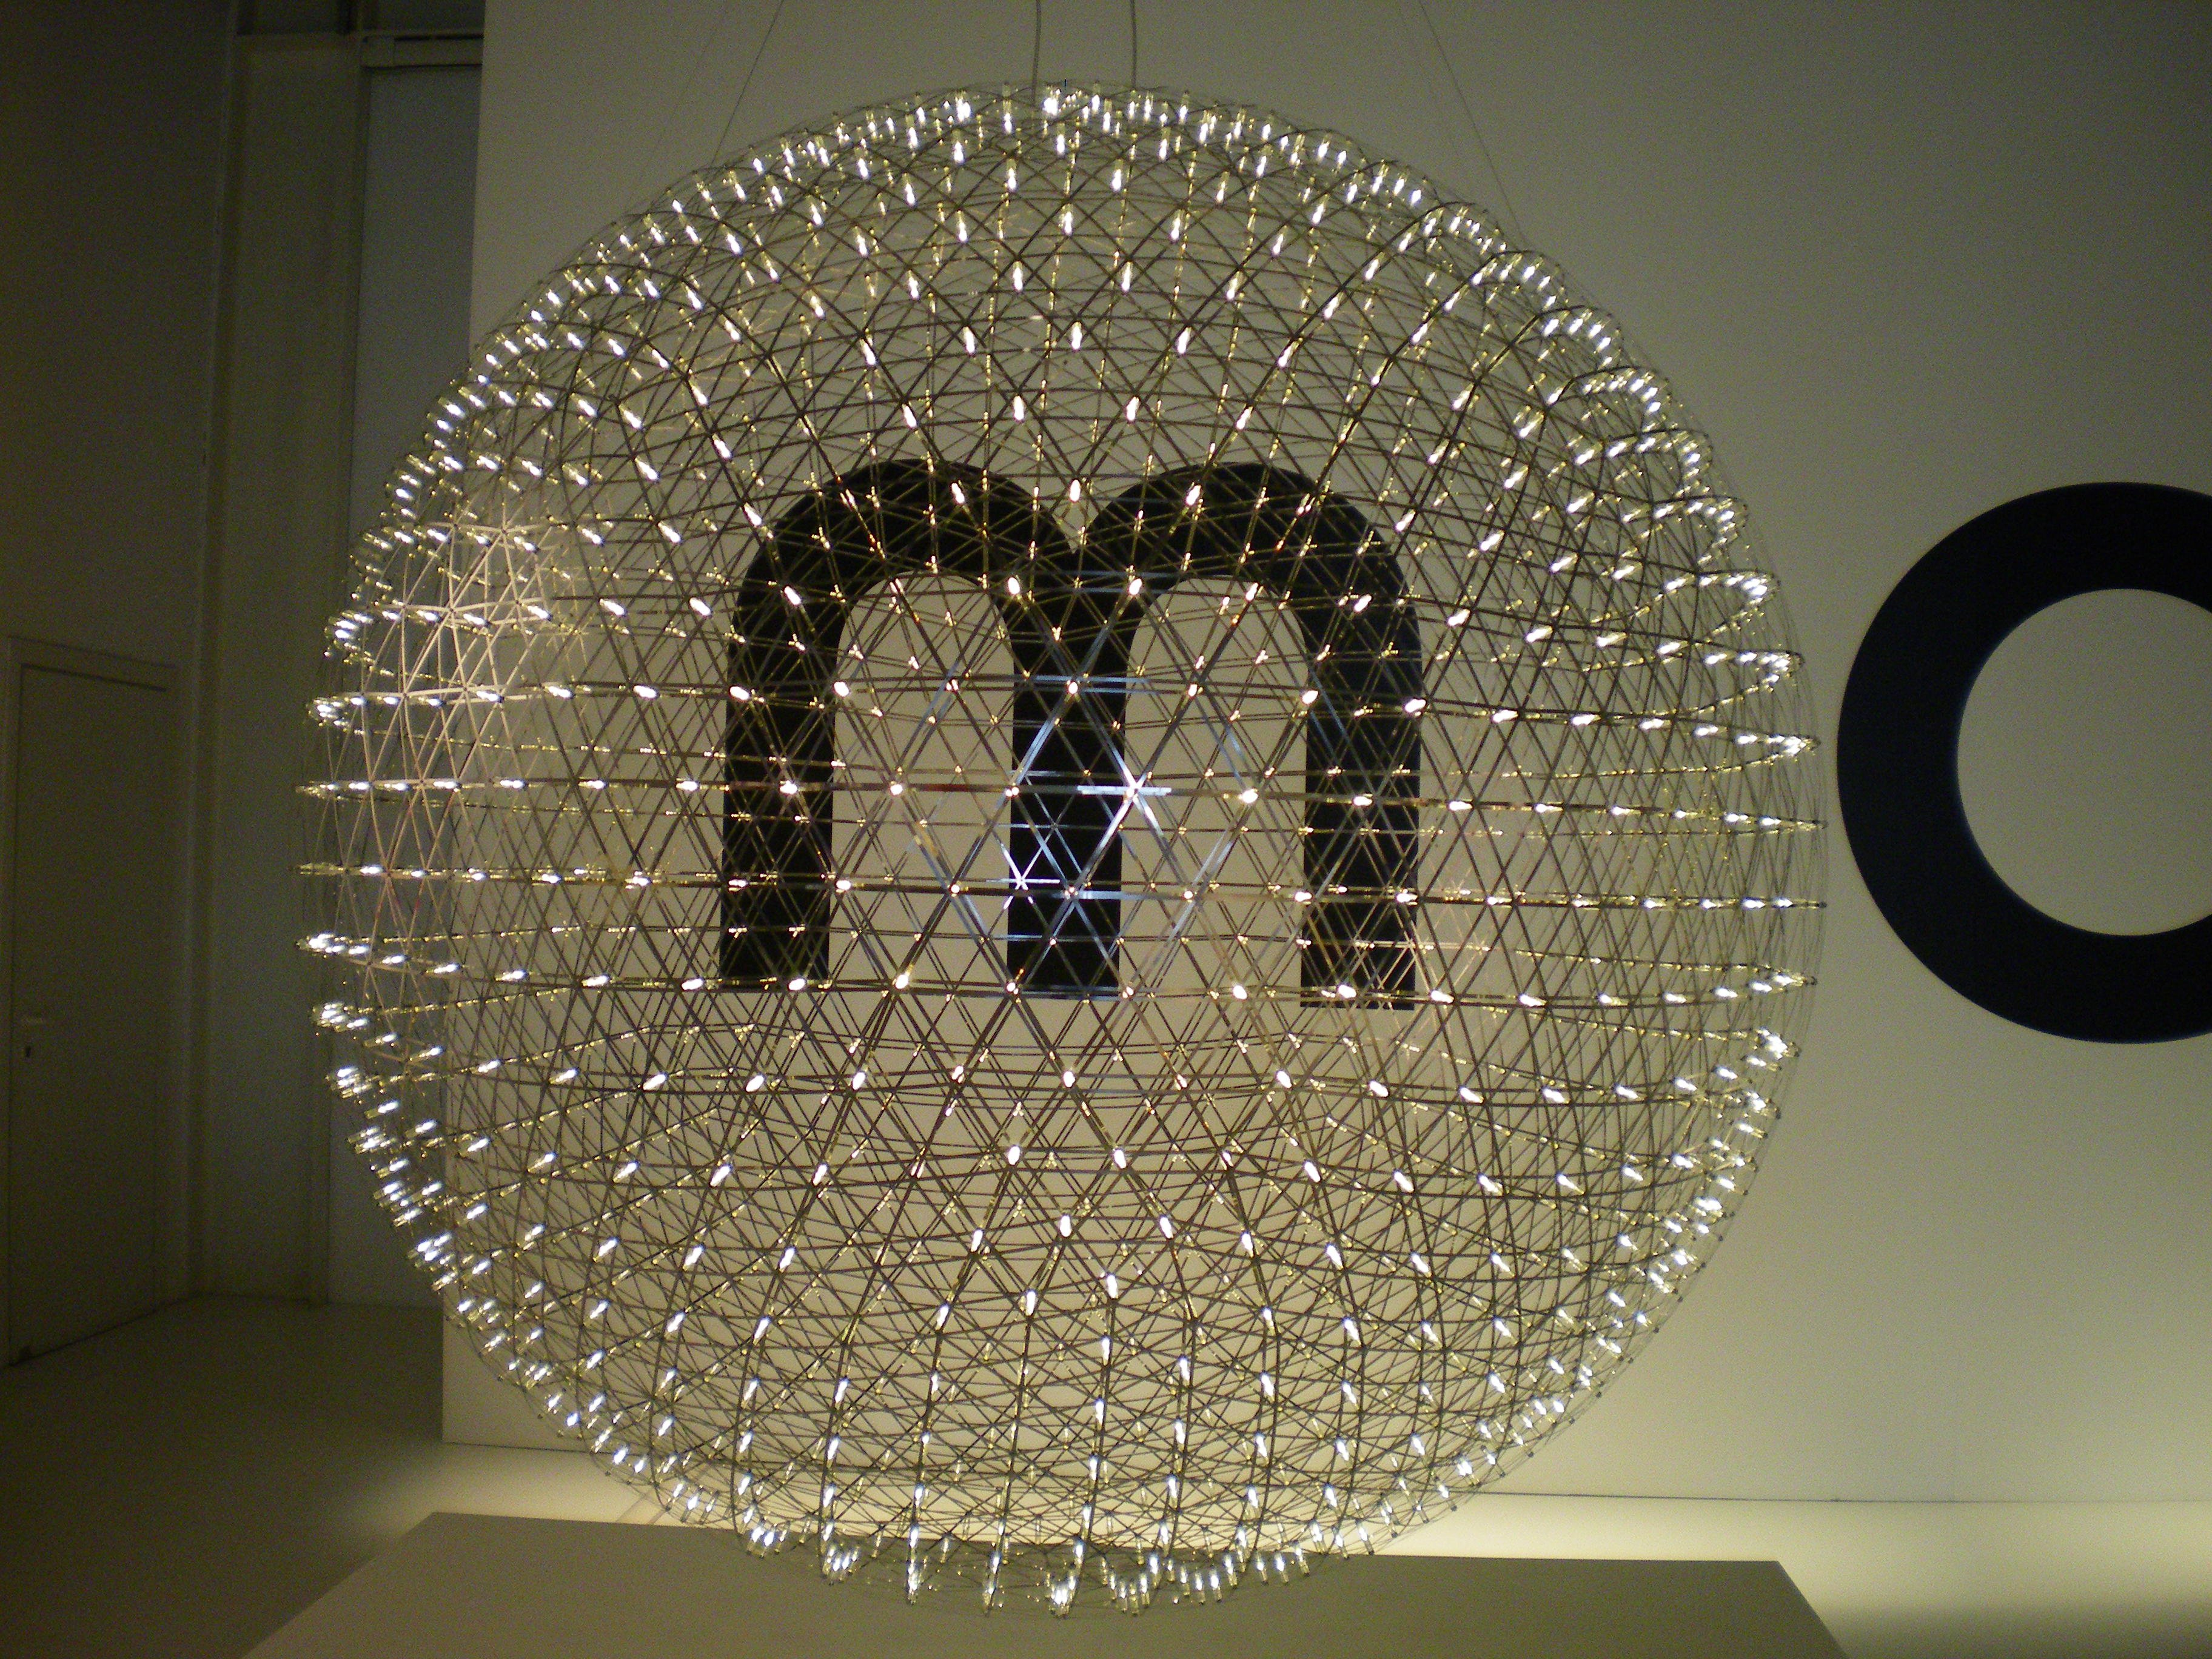 LED lamp Raimod by Raimond Puts for moooi ... as seen in Milan 2009